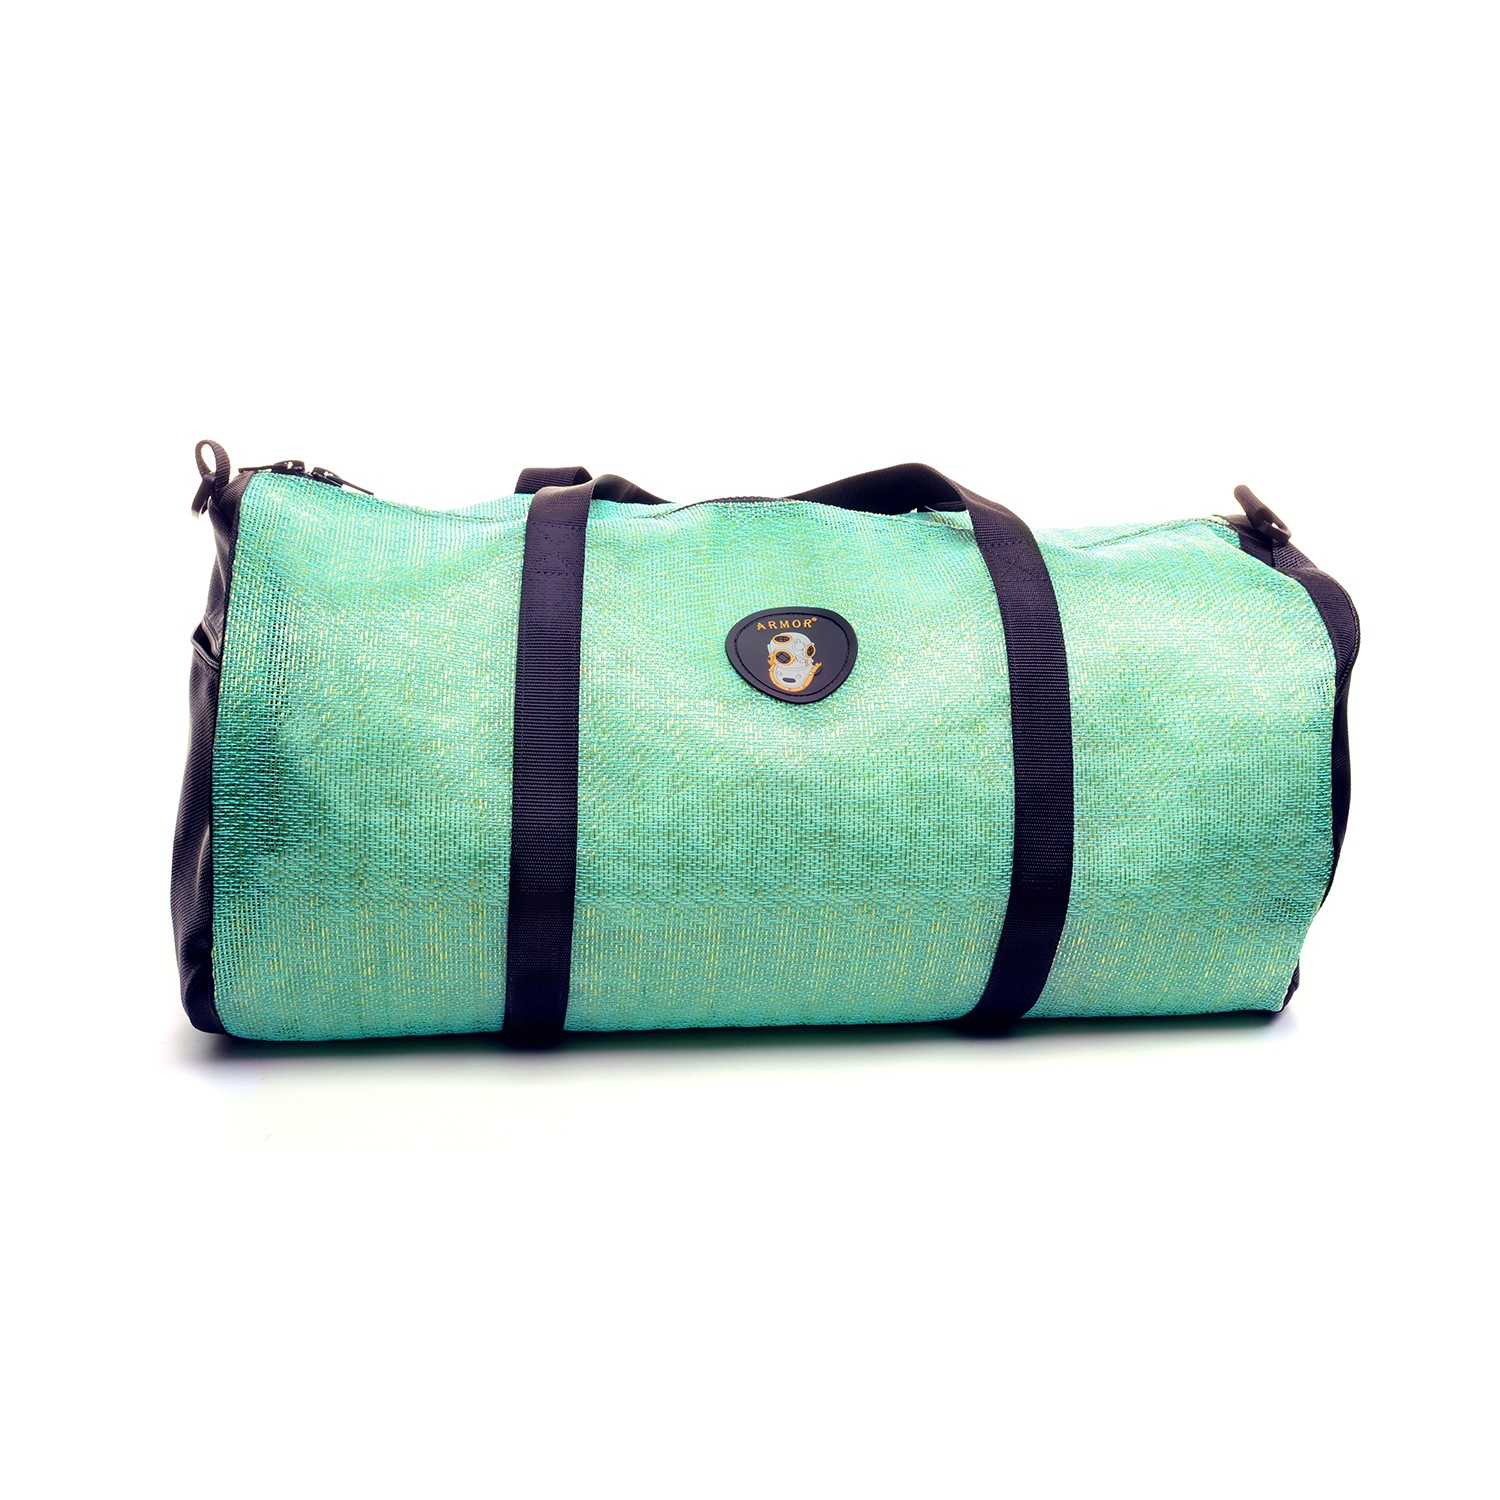 "Armor Nautical 29"" Duffel Bag"